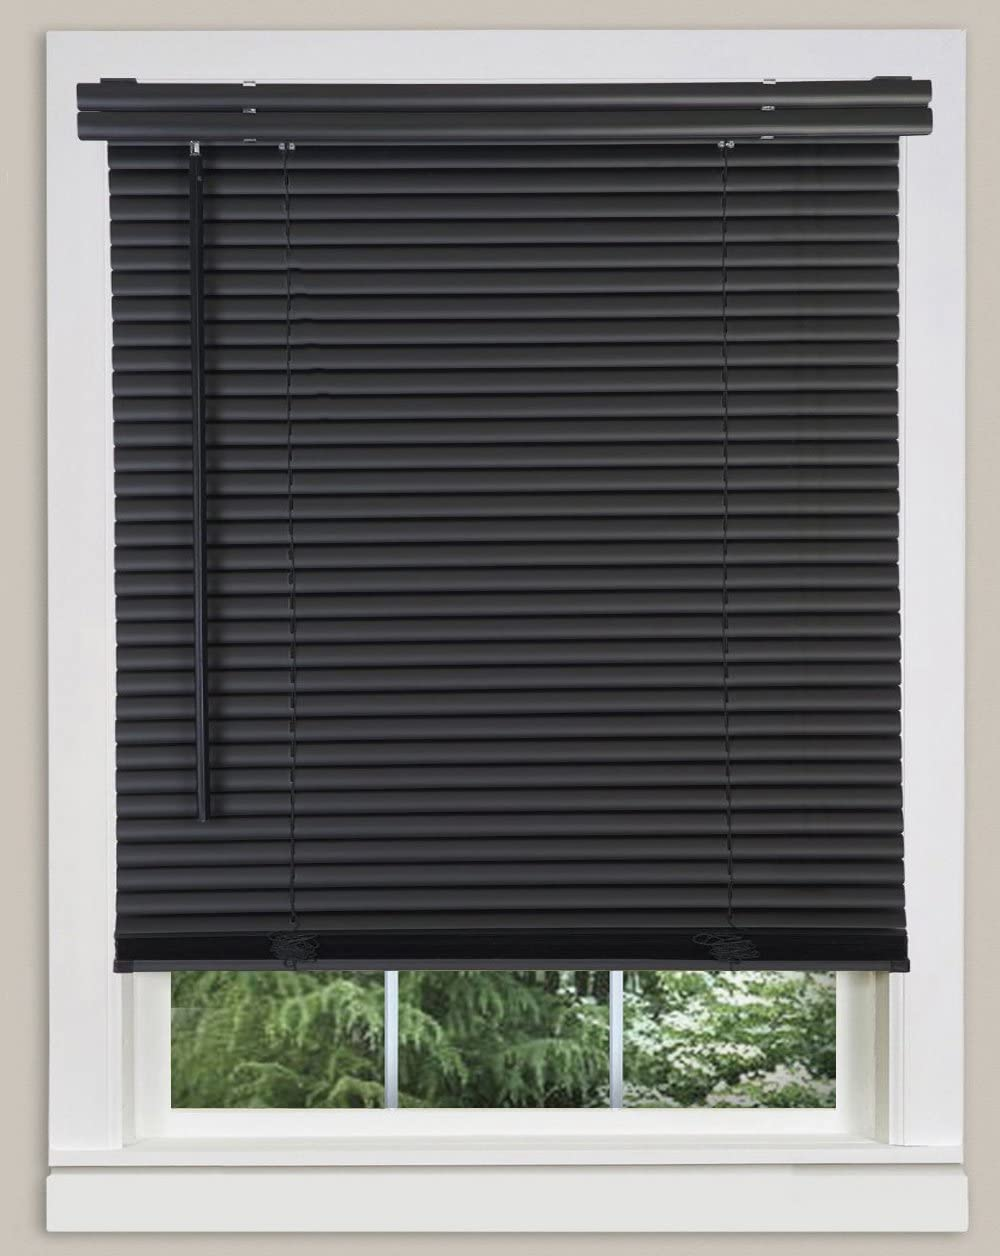 PowerSellerUSA Cordless Window Blinds 1 Slats Light Filtering Vinyl Mini Blind – Black, 52 Width x 64